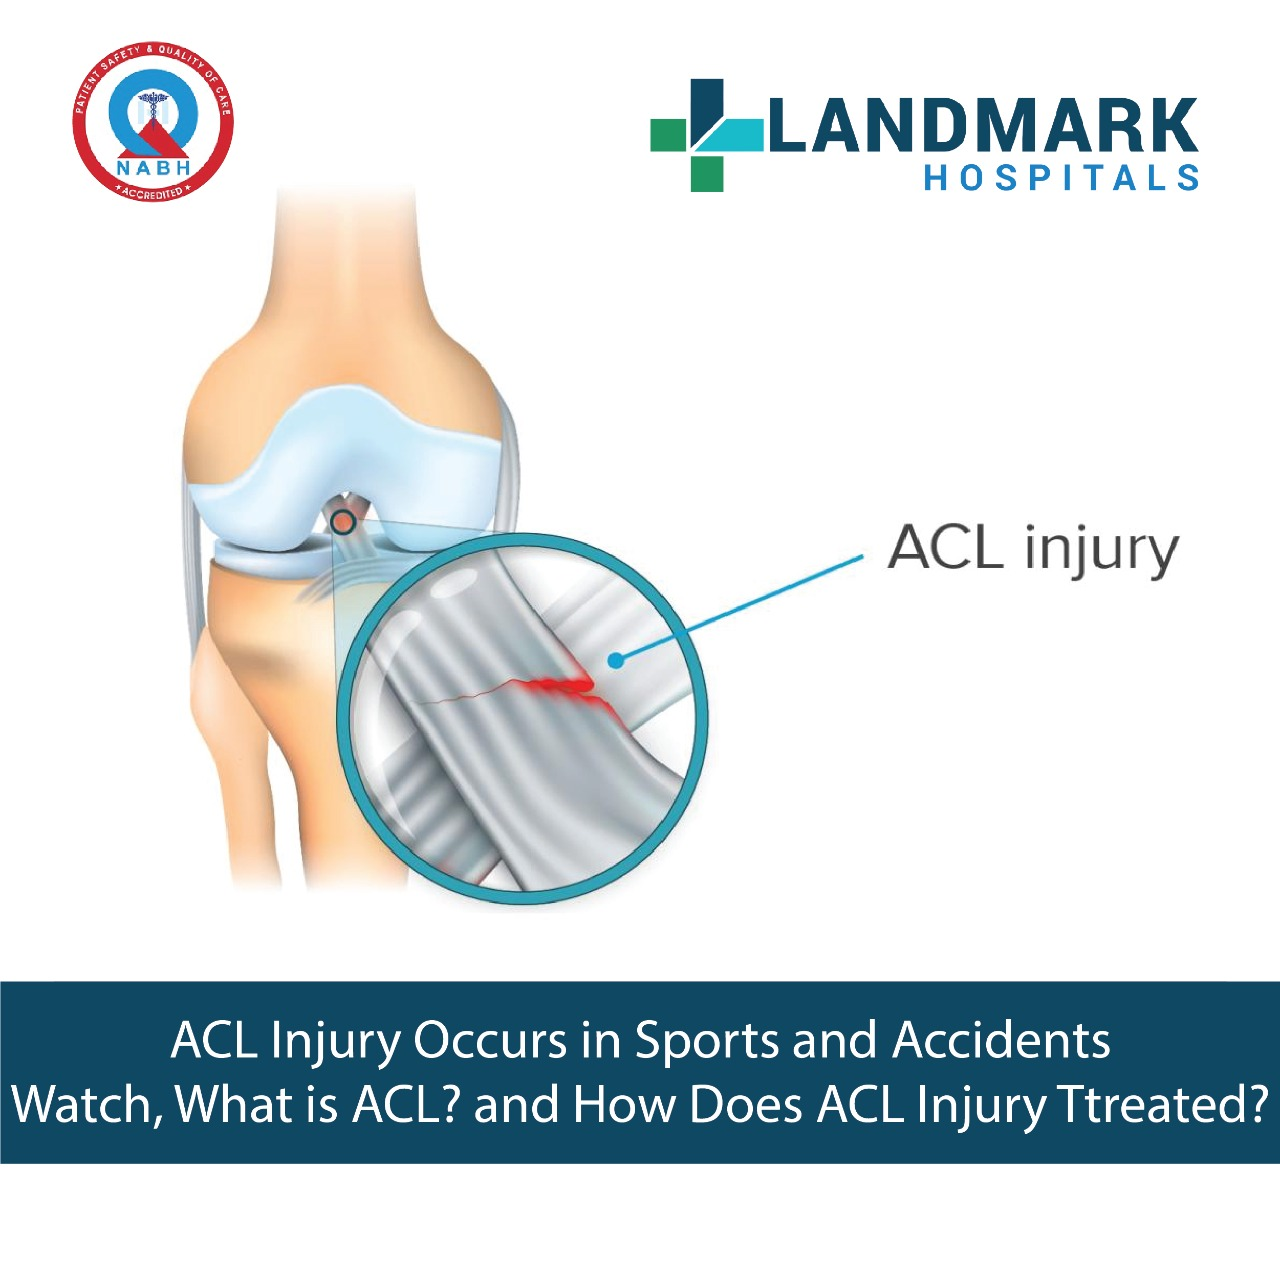 ACL Injuries and Treatment Explained